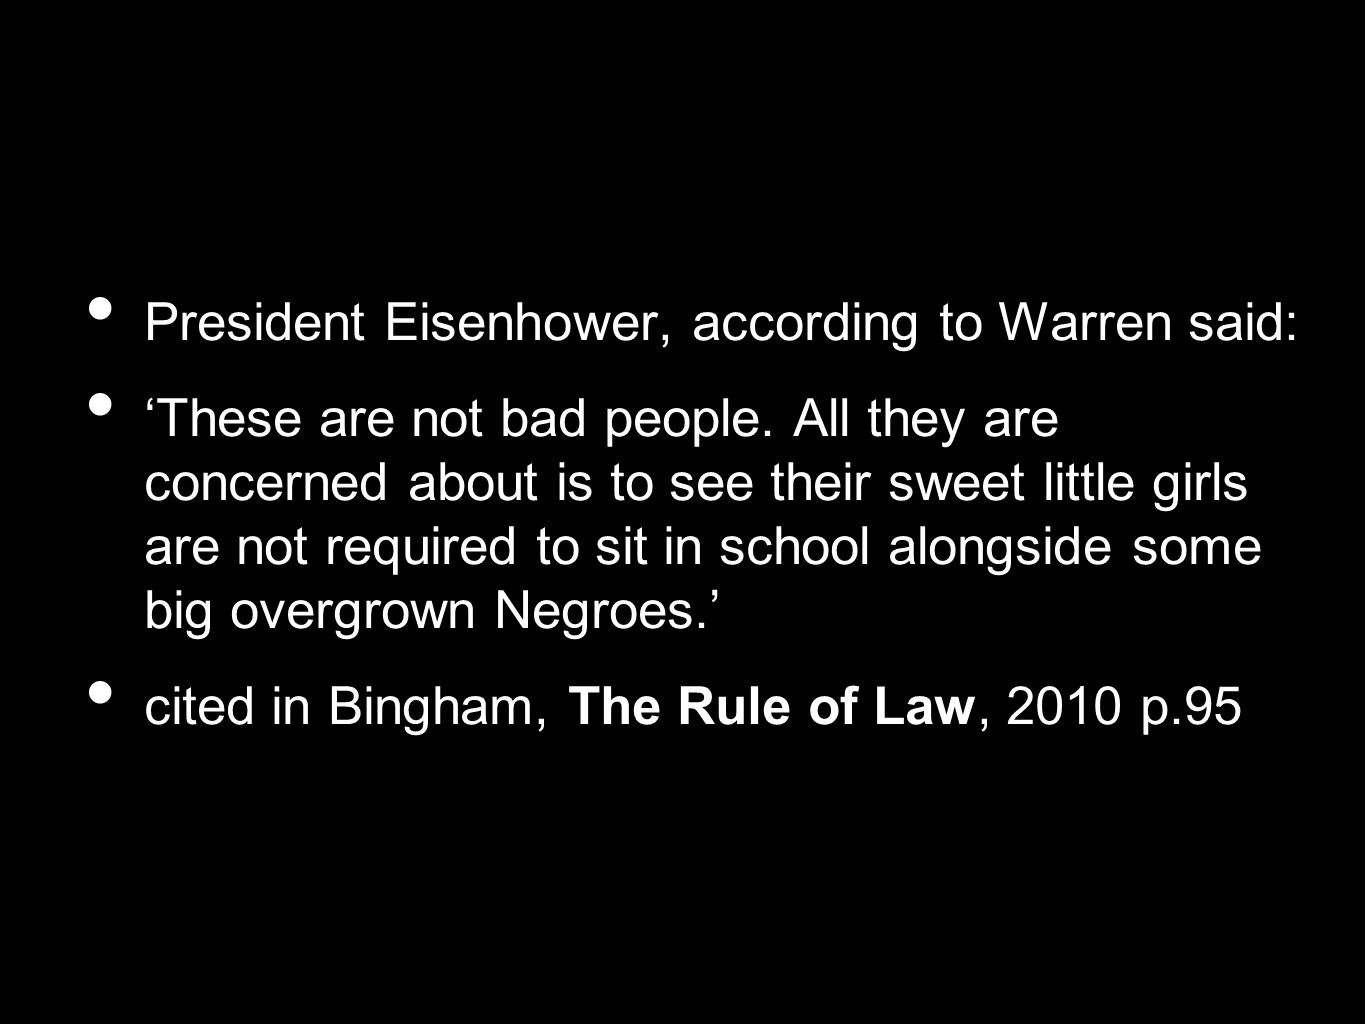 President Eisenhower, according to Warren said: 'These are not bad people. All they are concerned about is to see their sweet little girls are not req